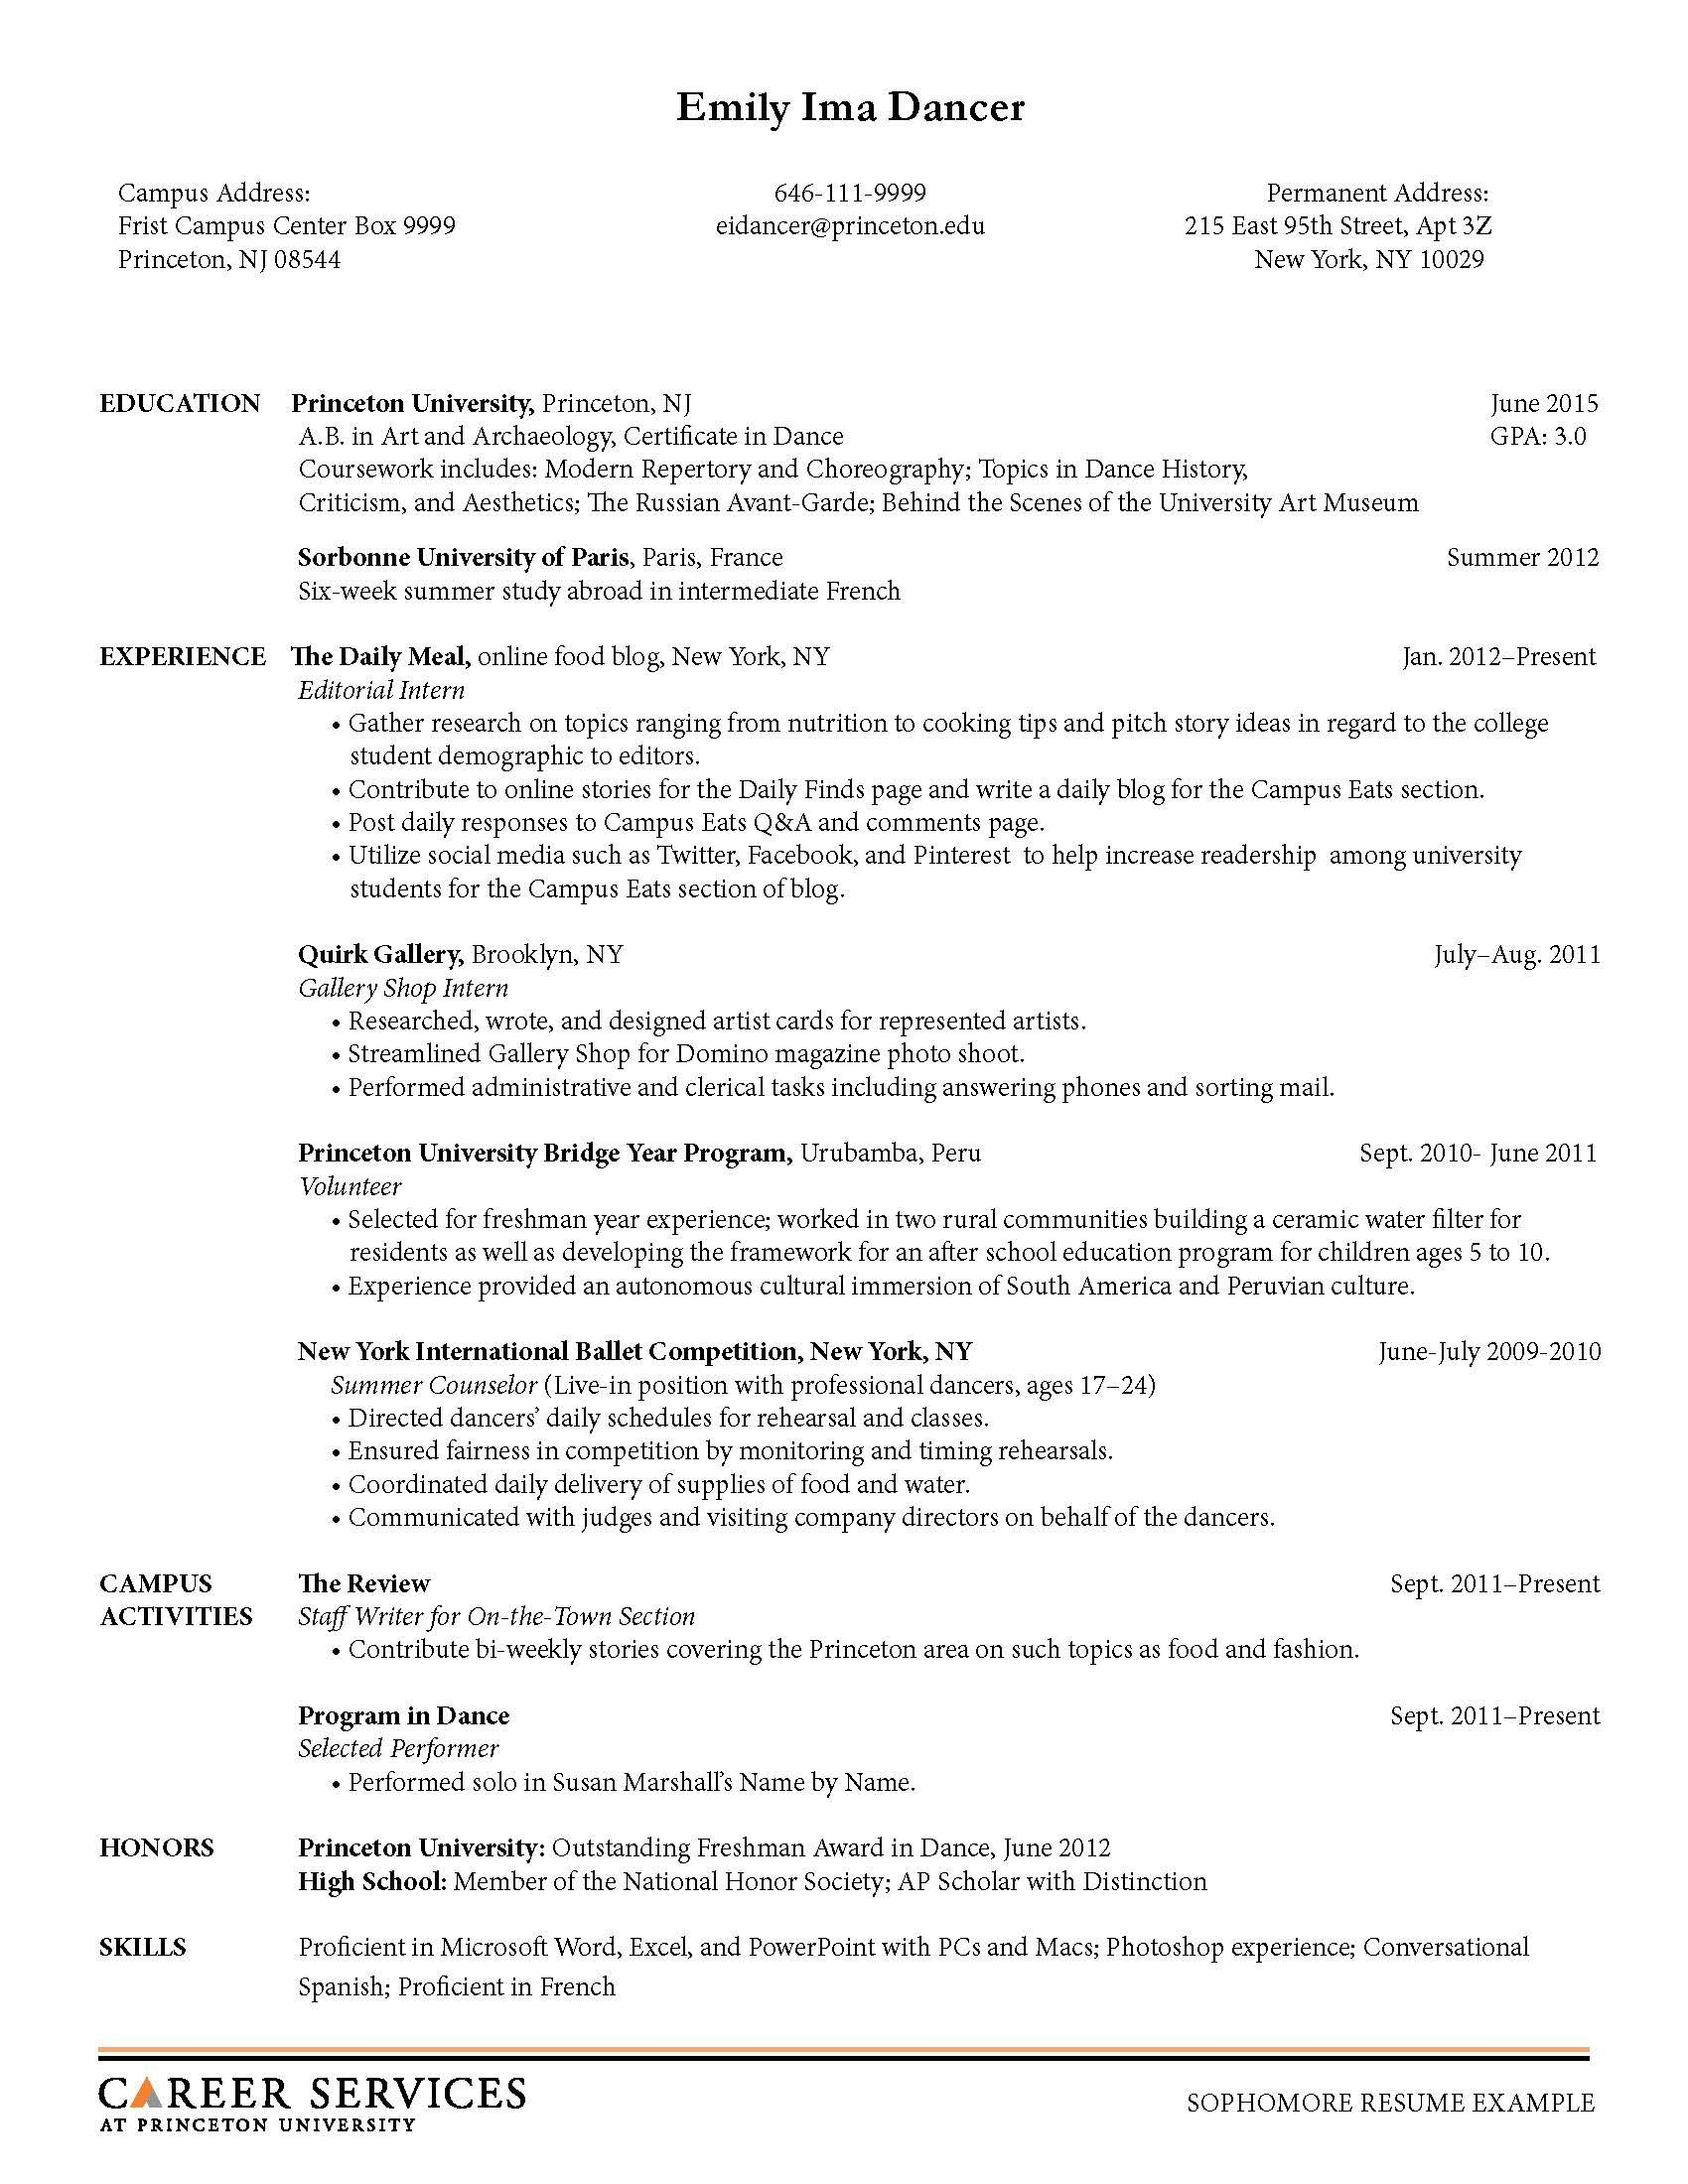 Opposenewapstandardsus  Unusual Sample Resume Resume And Career On Pinterest With Fascinating Google Resumes Besides Entry Level Accounting Resume Furthermore Resume Tense With Attractive What Is An Objective In A Resume Also Car Sales Resume In Addition What A Good Resume Looks Like And Sample Project Manager Resume As Well As How To Put References On A Resume Additionally Keywords To Use In A Resume From Pinterestcom With Opposenewapstandardsus  Fascinating Sample Resume Resume And Career On Pinterest With Attractive Google Resumes Besides Entry Level Accounting Resume Furthermore Resume Tense And Unusual What Is An Objective In A Resume Also Car Sales Resume In Addition What A Good Resume Looks Like From Pinterestcom